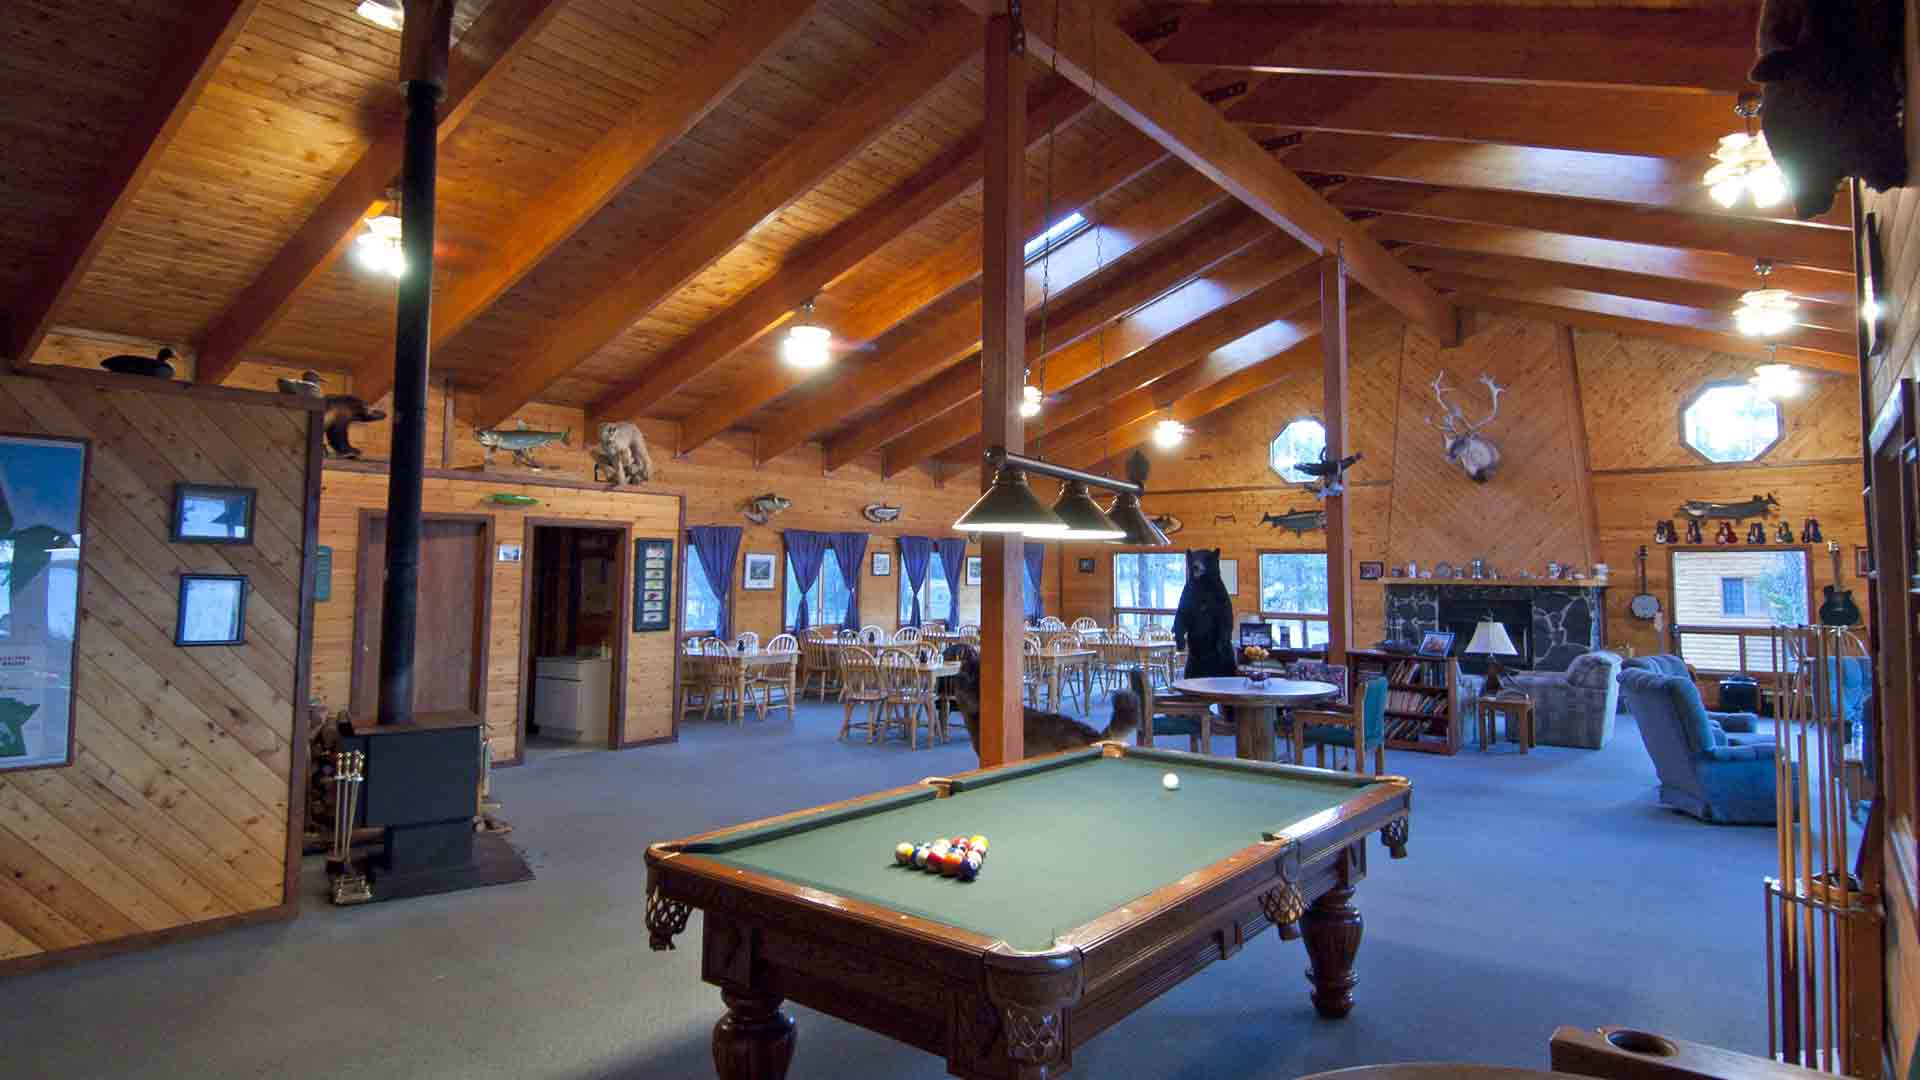 Pooltable in Large Vaulted Dining Room